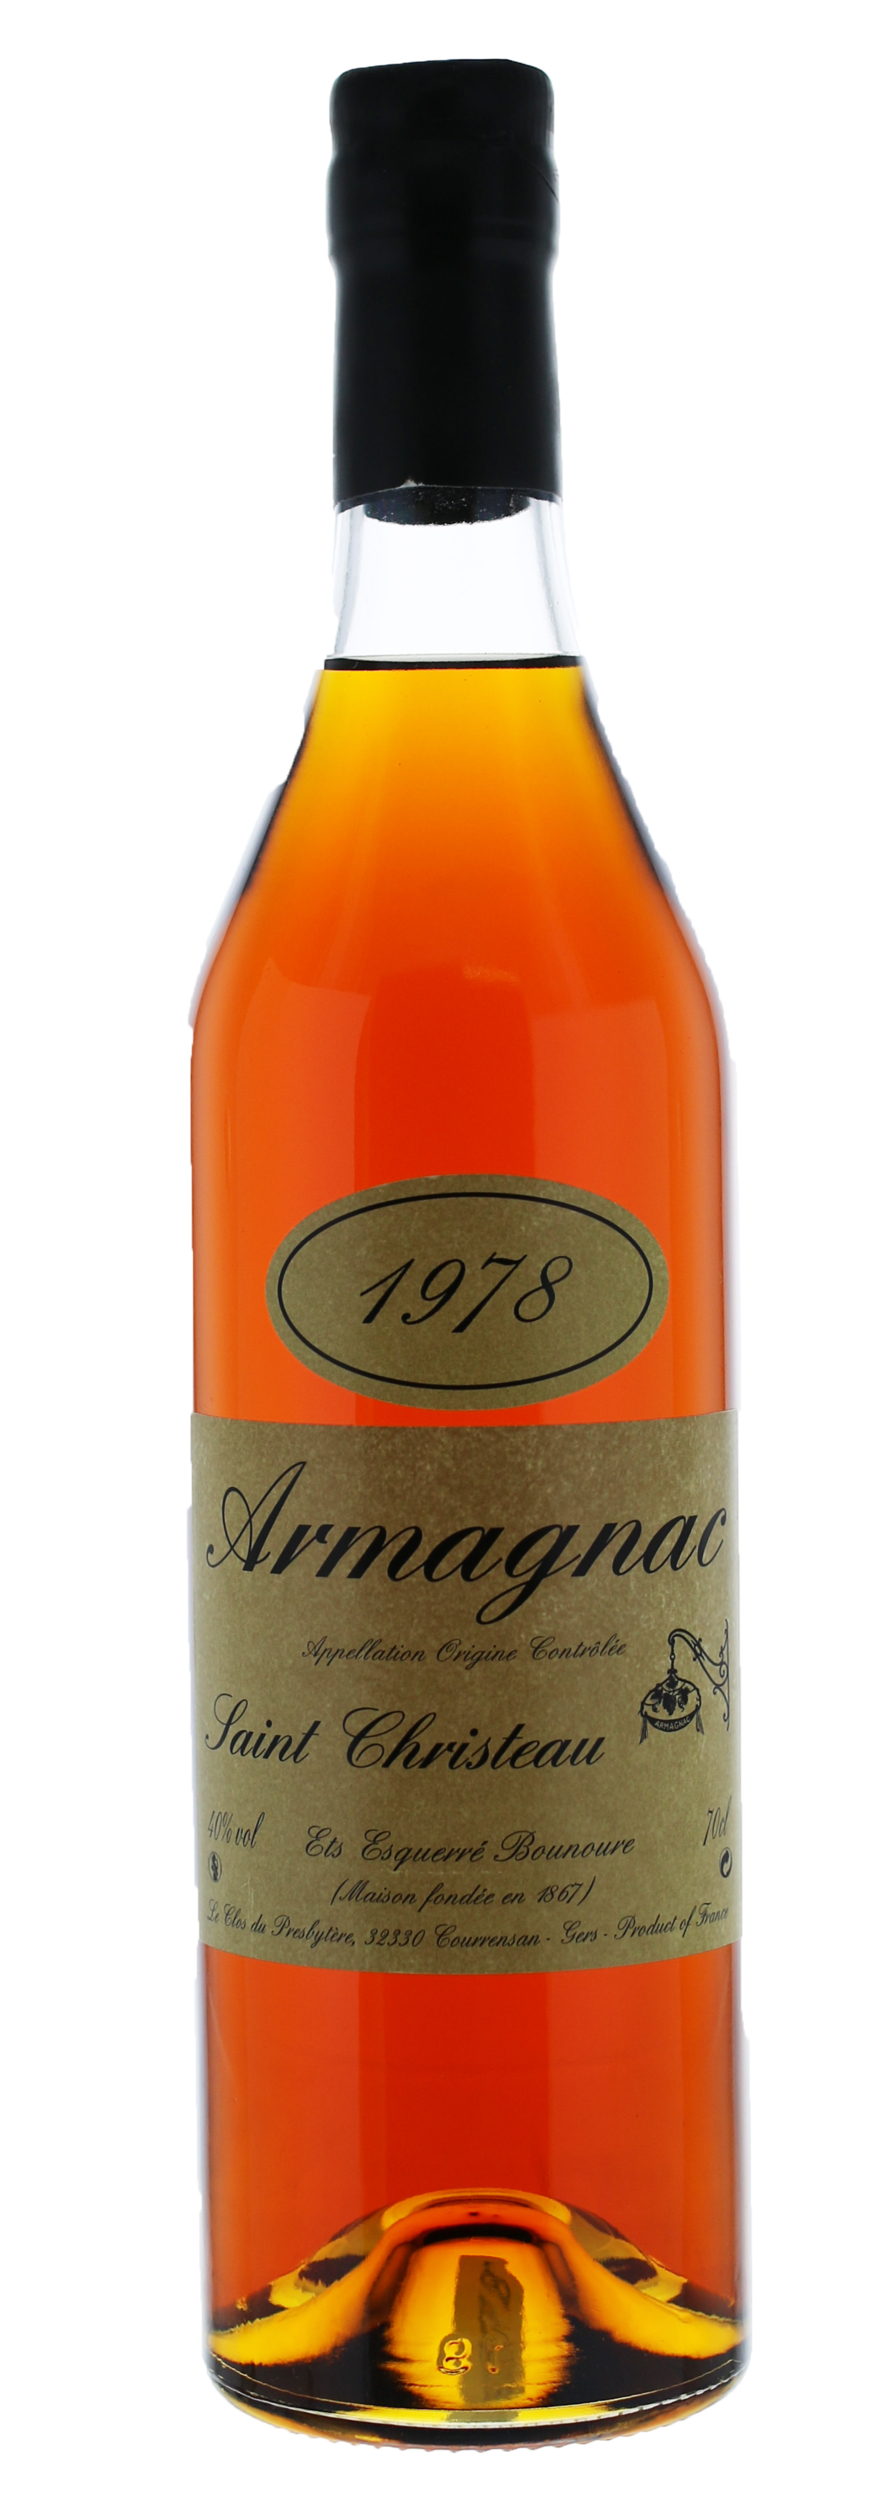 ARMAGNAC - 1978 - Saint-Christeau - 40° - G. Miclo